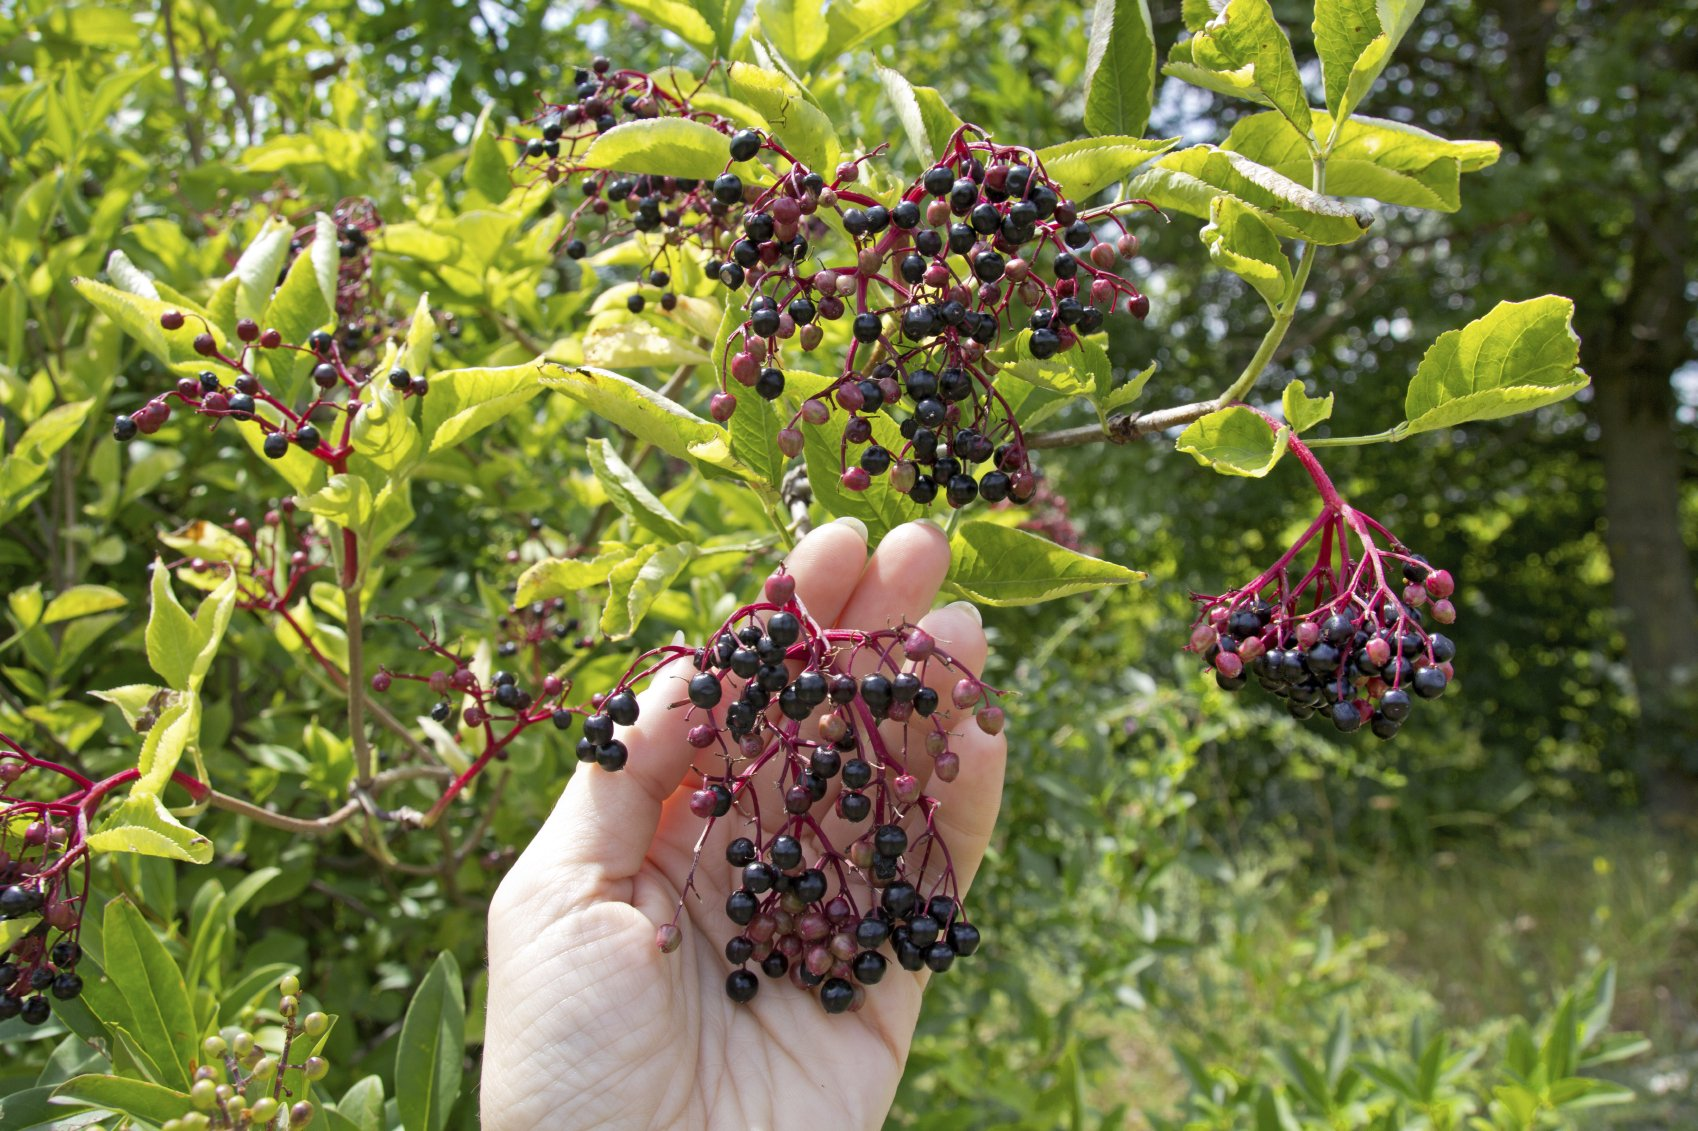 Elder Berry Whole Organic, dried (1 pound) by MagJo Naturals (Image #2)